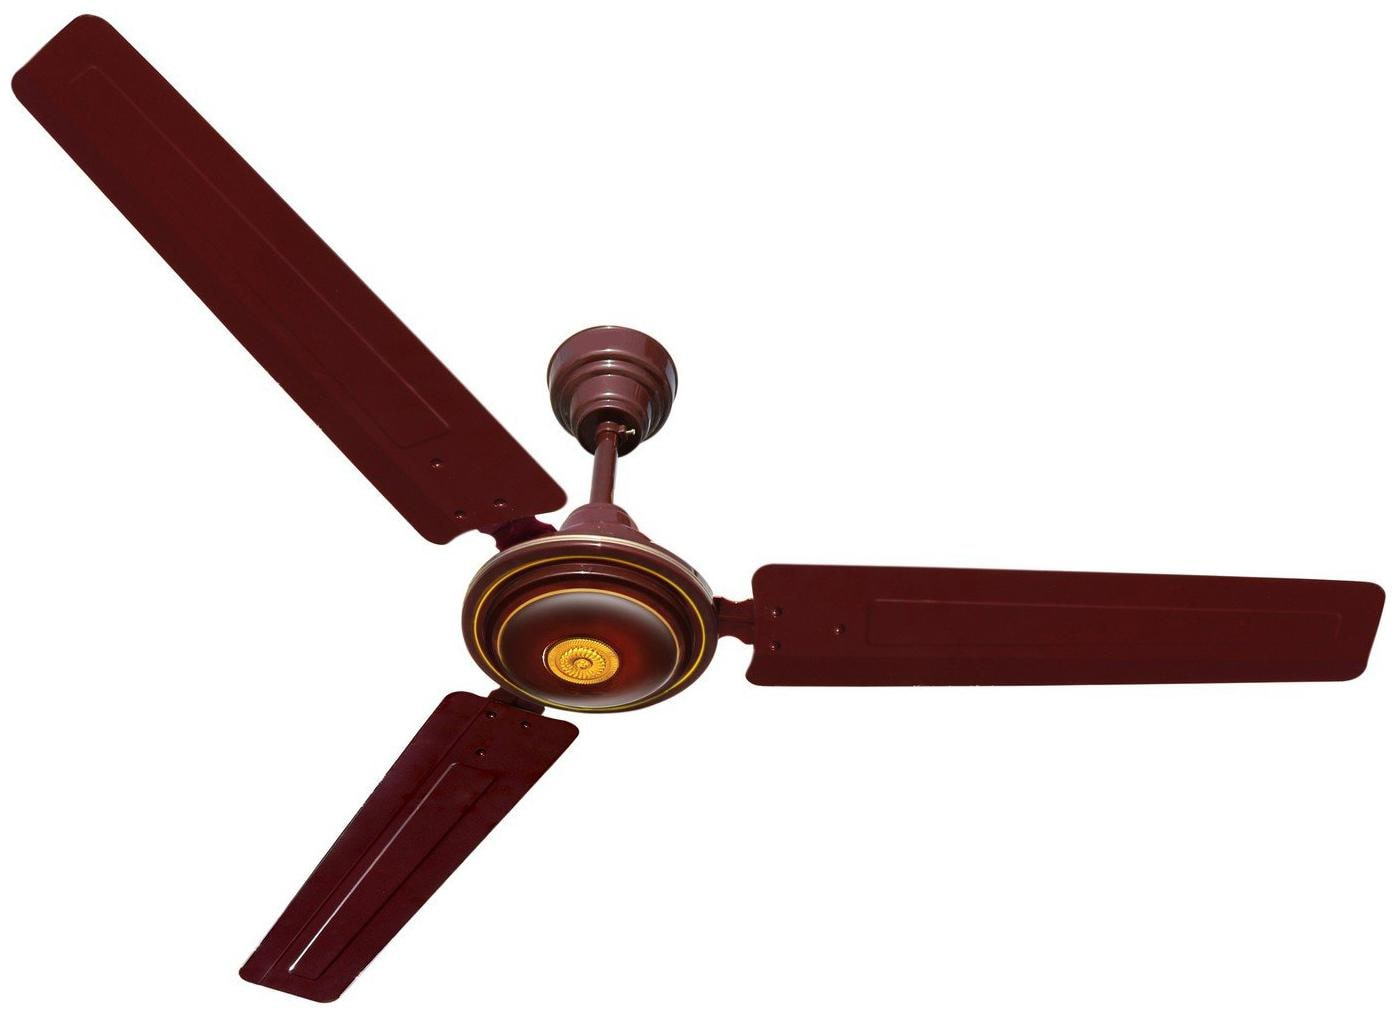 Anchor Xl 1200mm Ceiling Fan (Brown) 1200 mm 3 Blade Ceiling Fan(Brown5, Pack of 1)